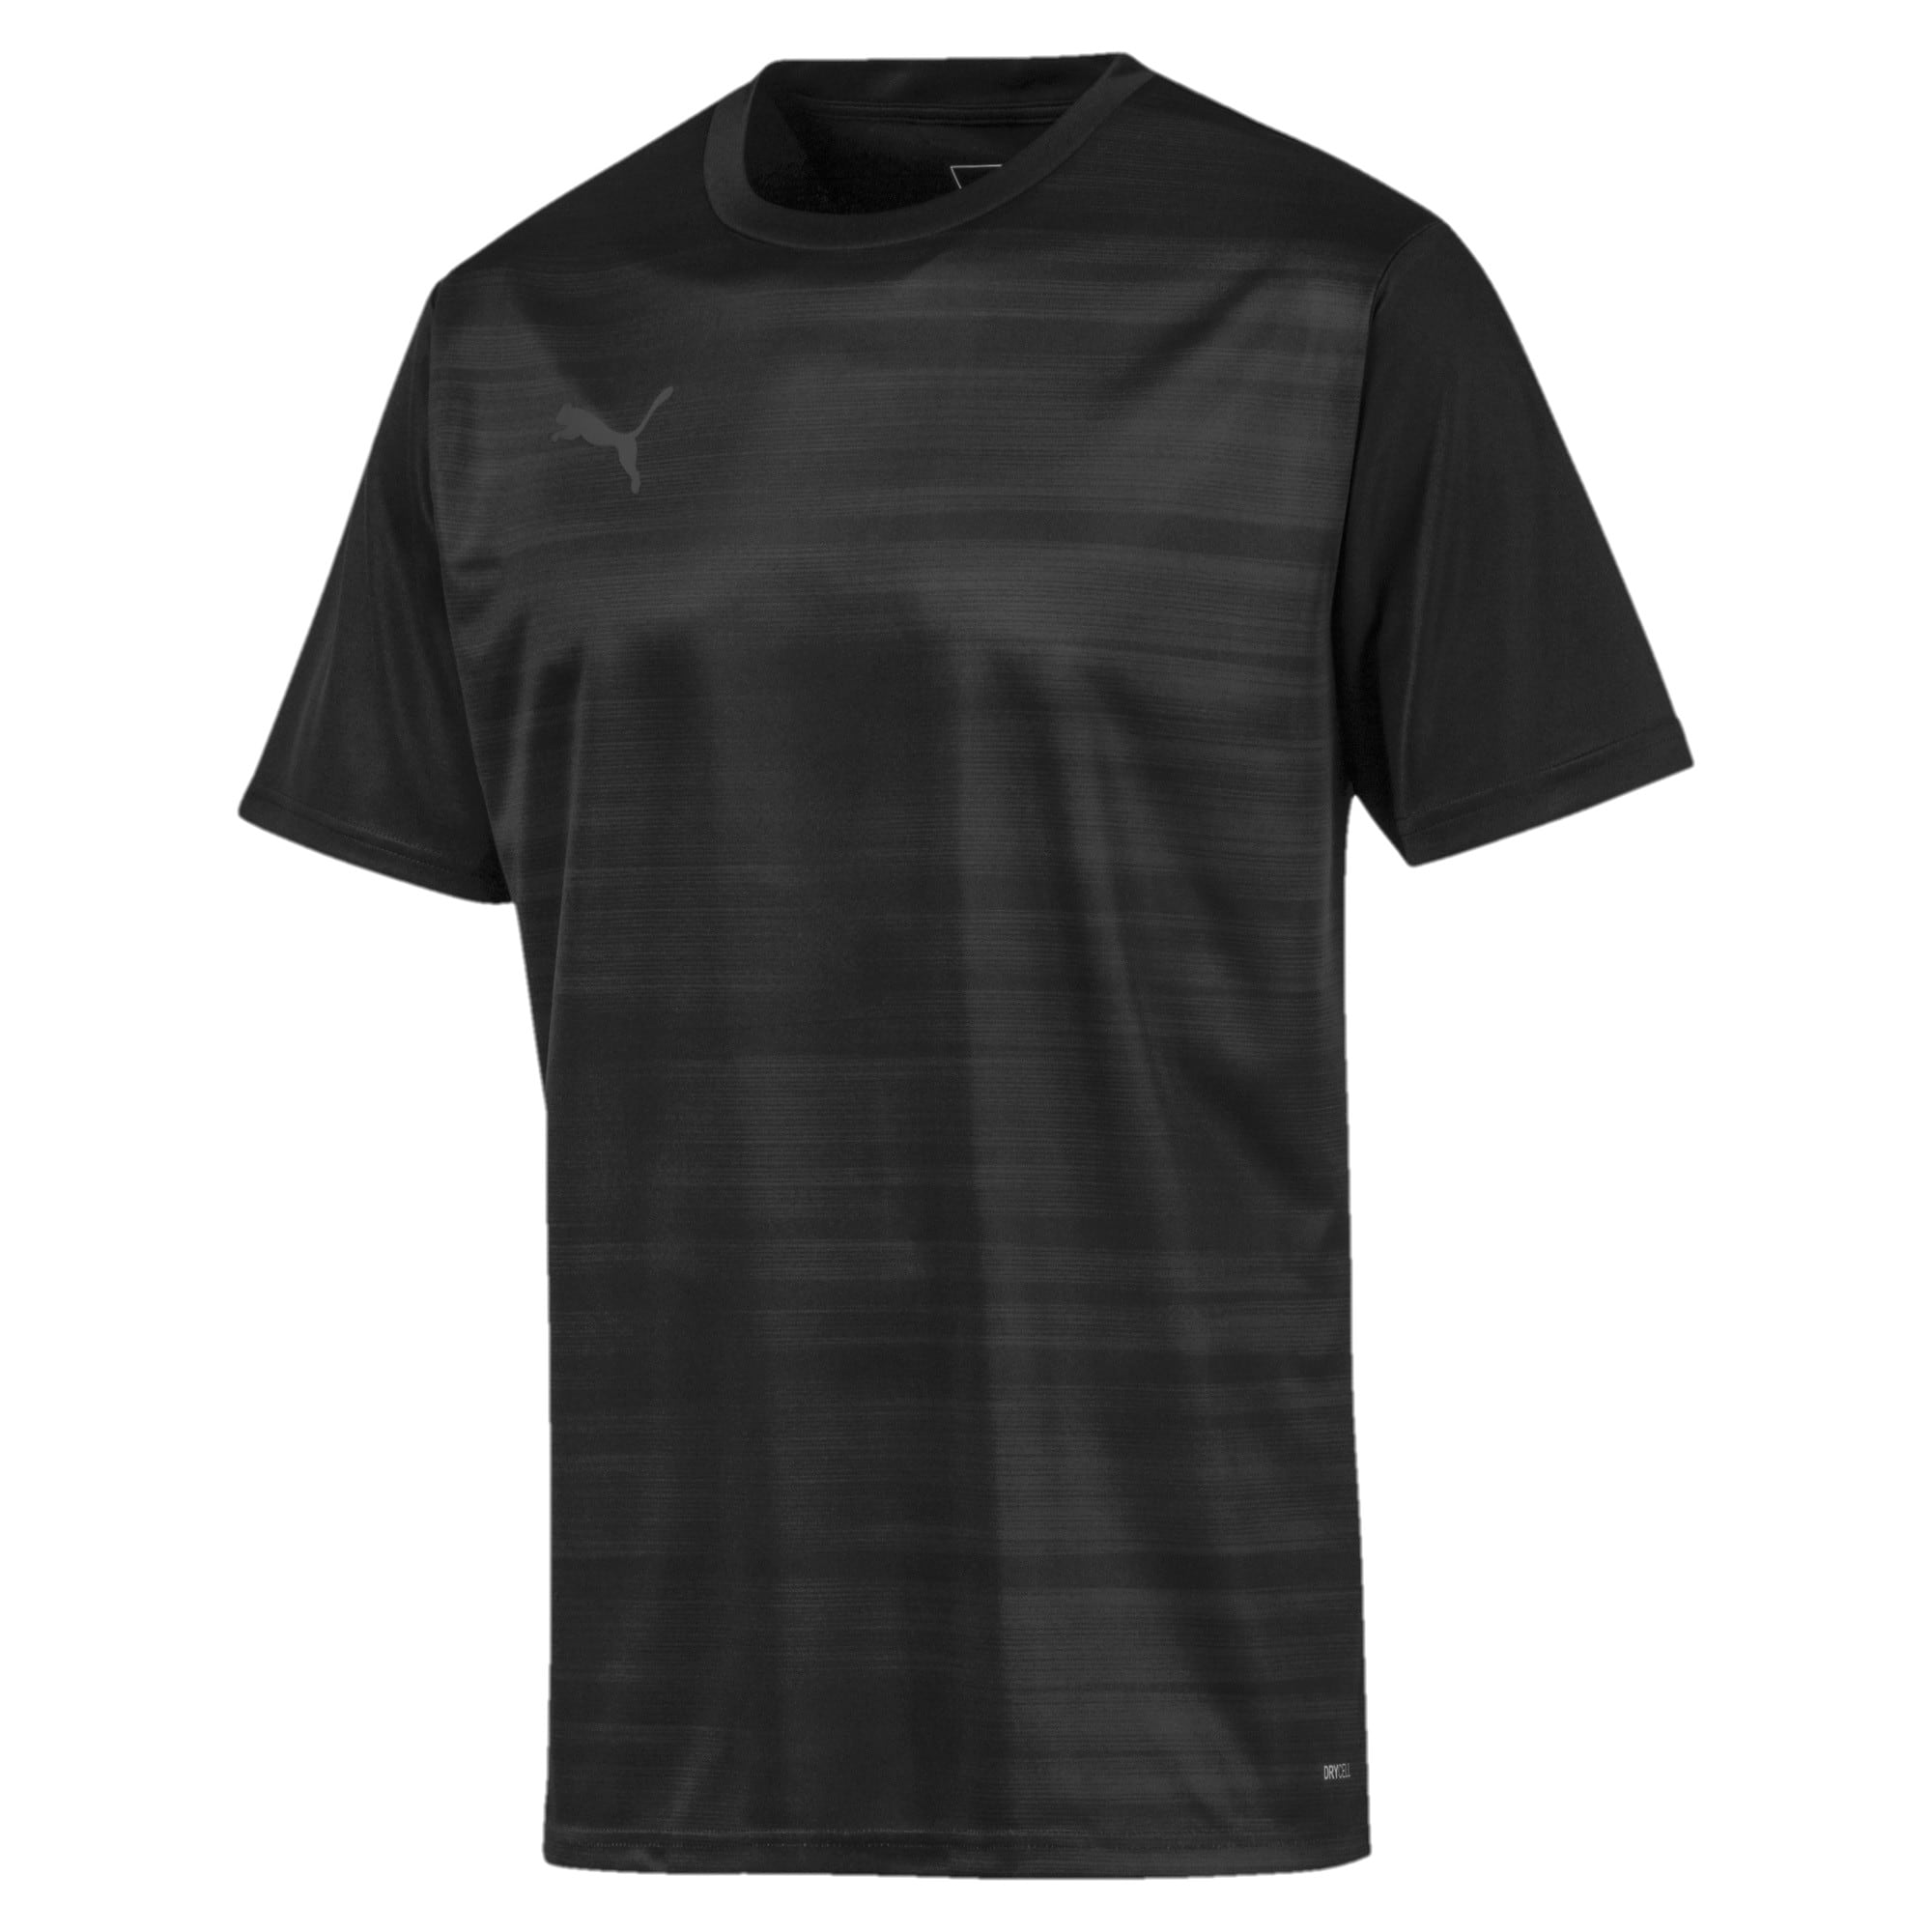 Thumbnail 4 of Core Graphic Men's Shirt, Puma Black-Phantom Black, medium